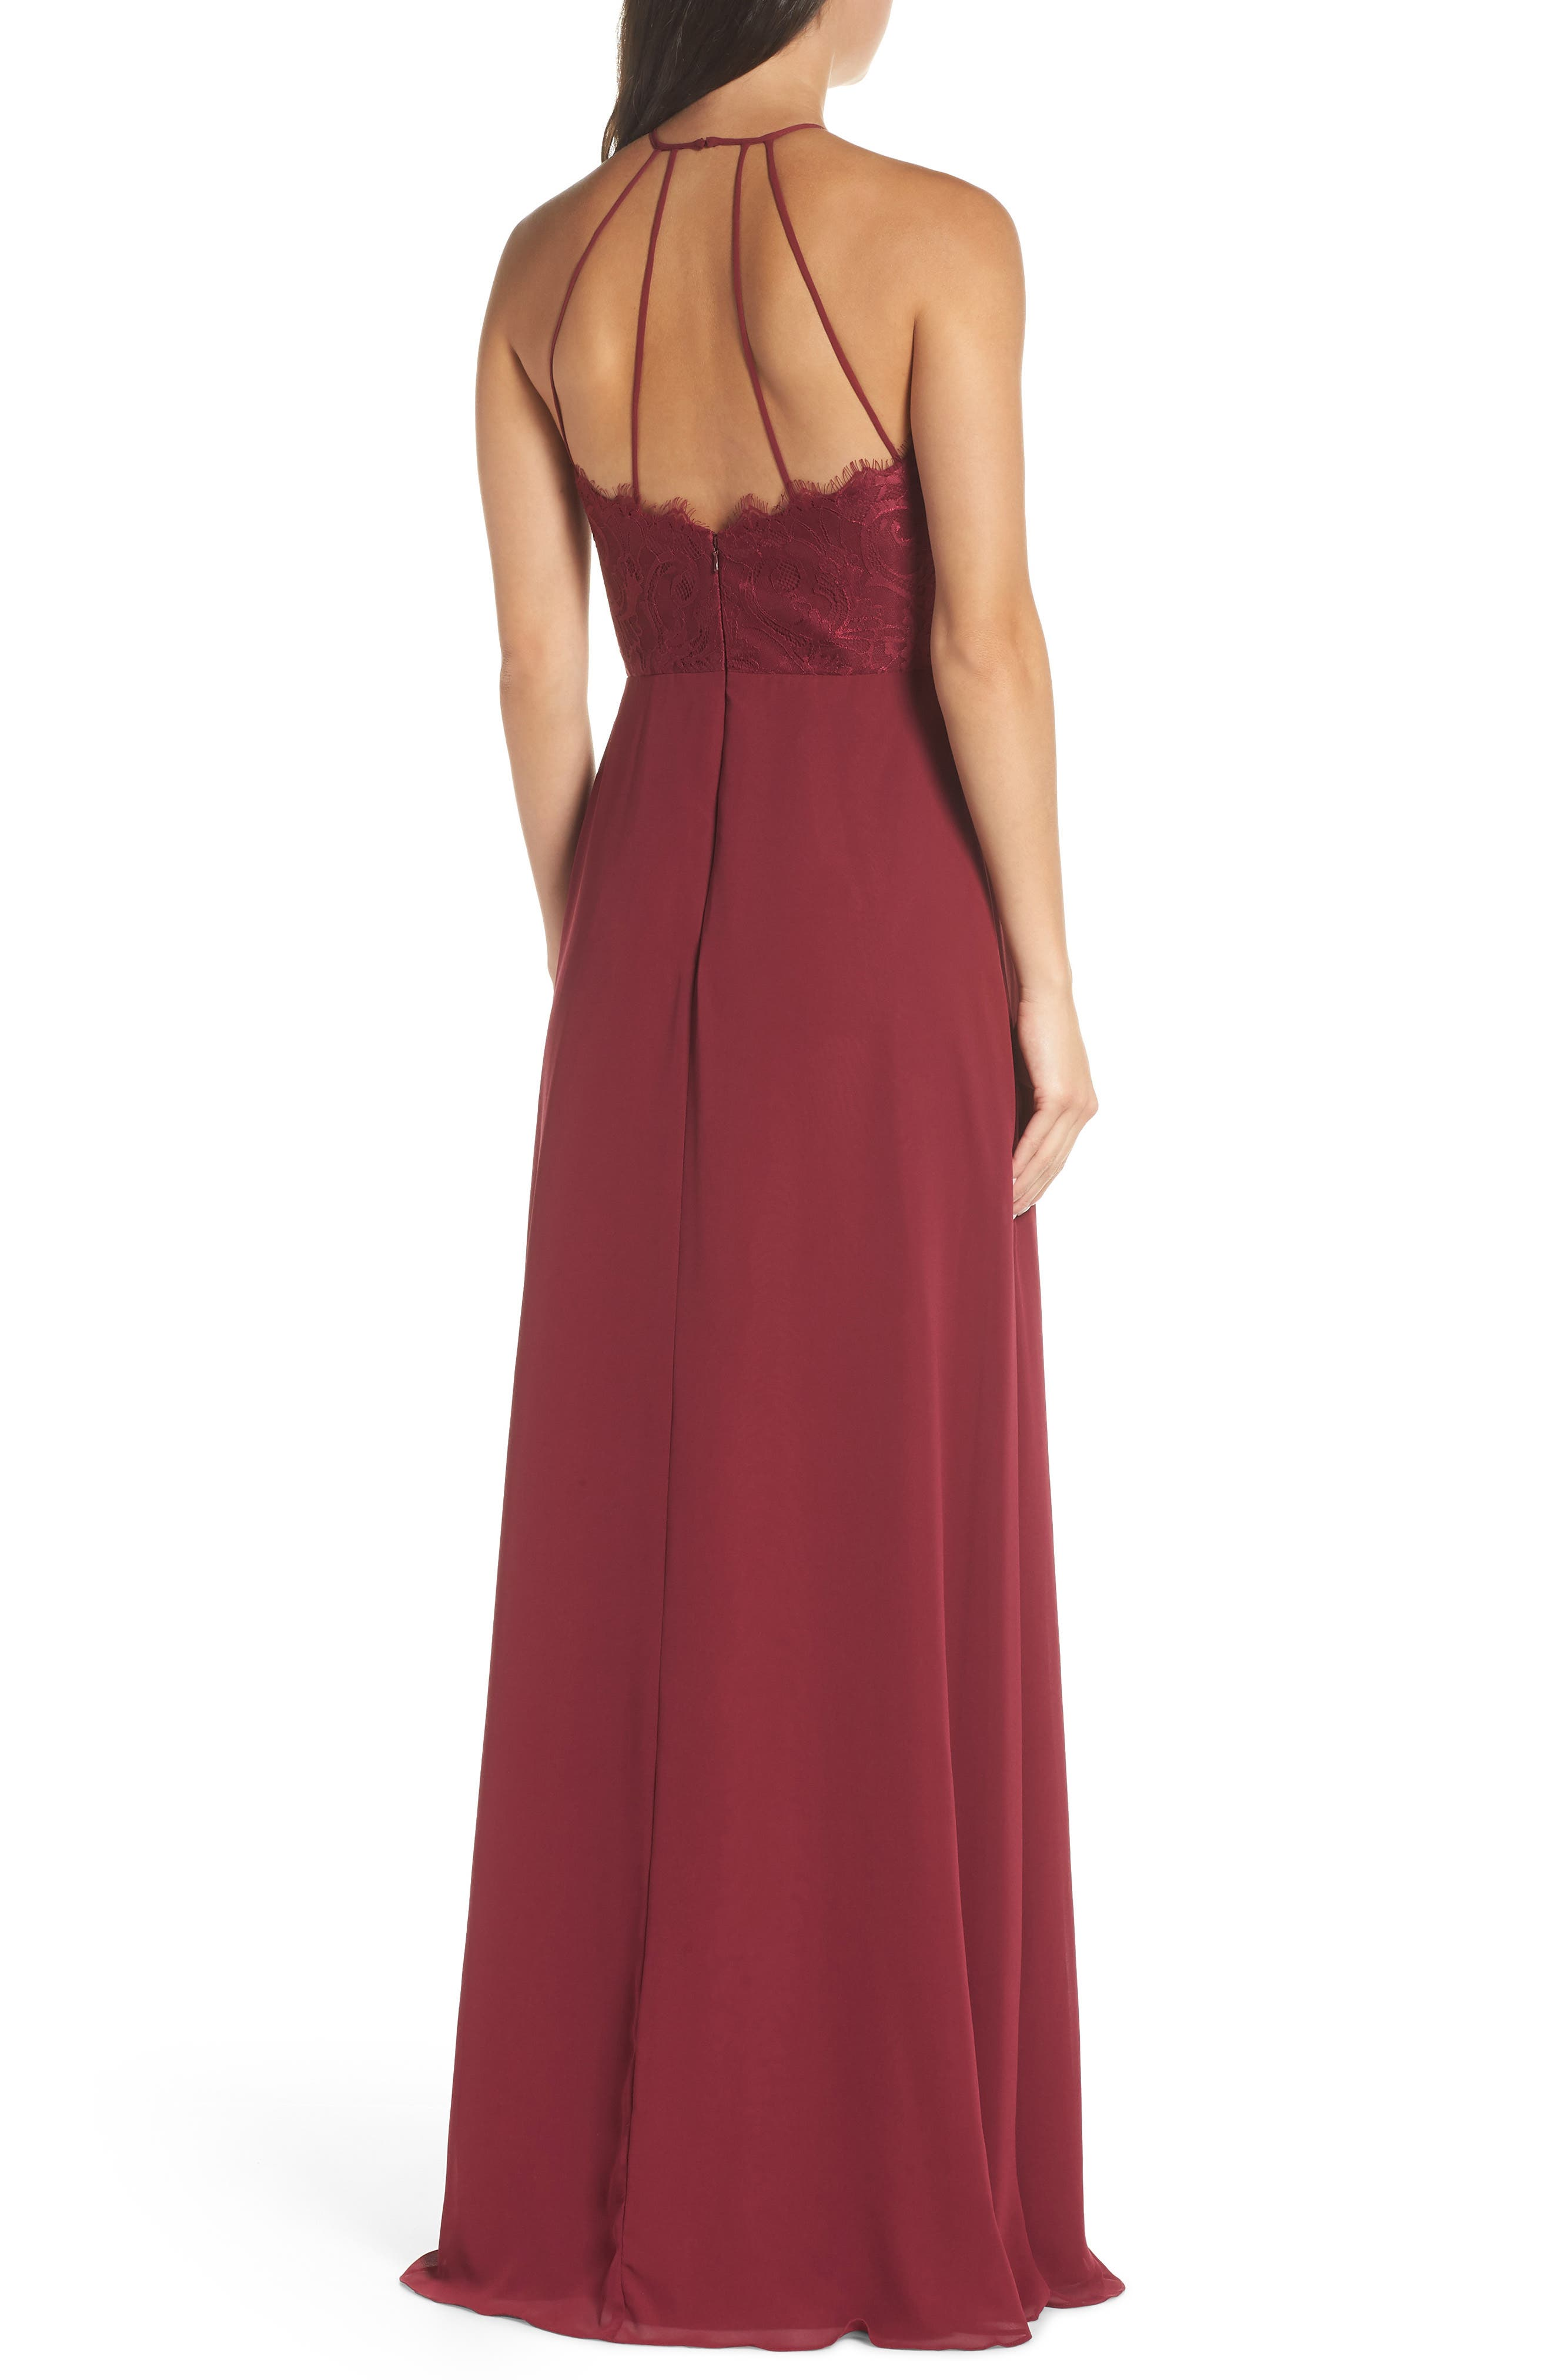 HAYLEY PAIGE OCCASIONS, Lace & Chiffon Halter Gown, Alternate thumbnail 2, color, BURGUNDY